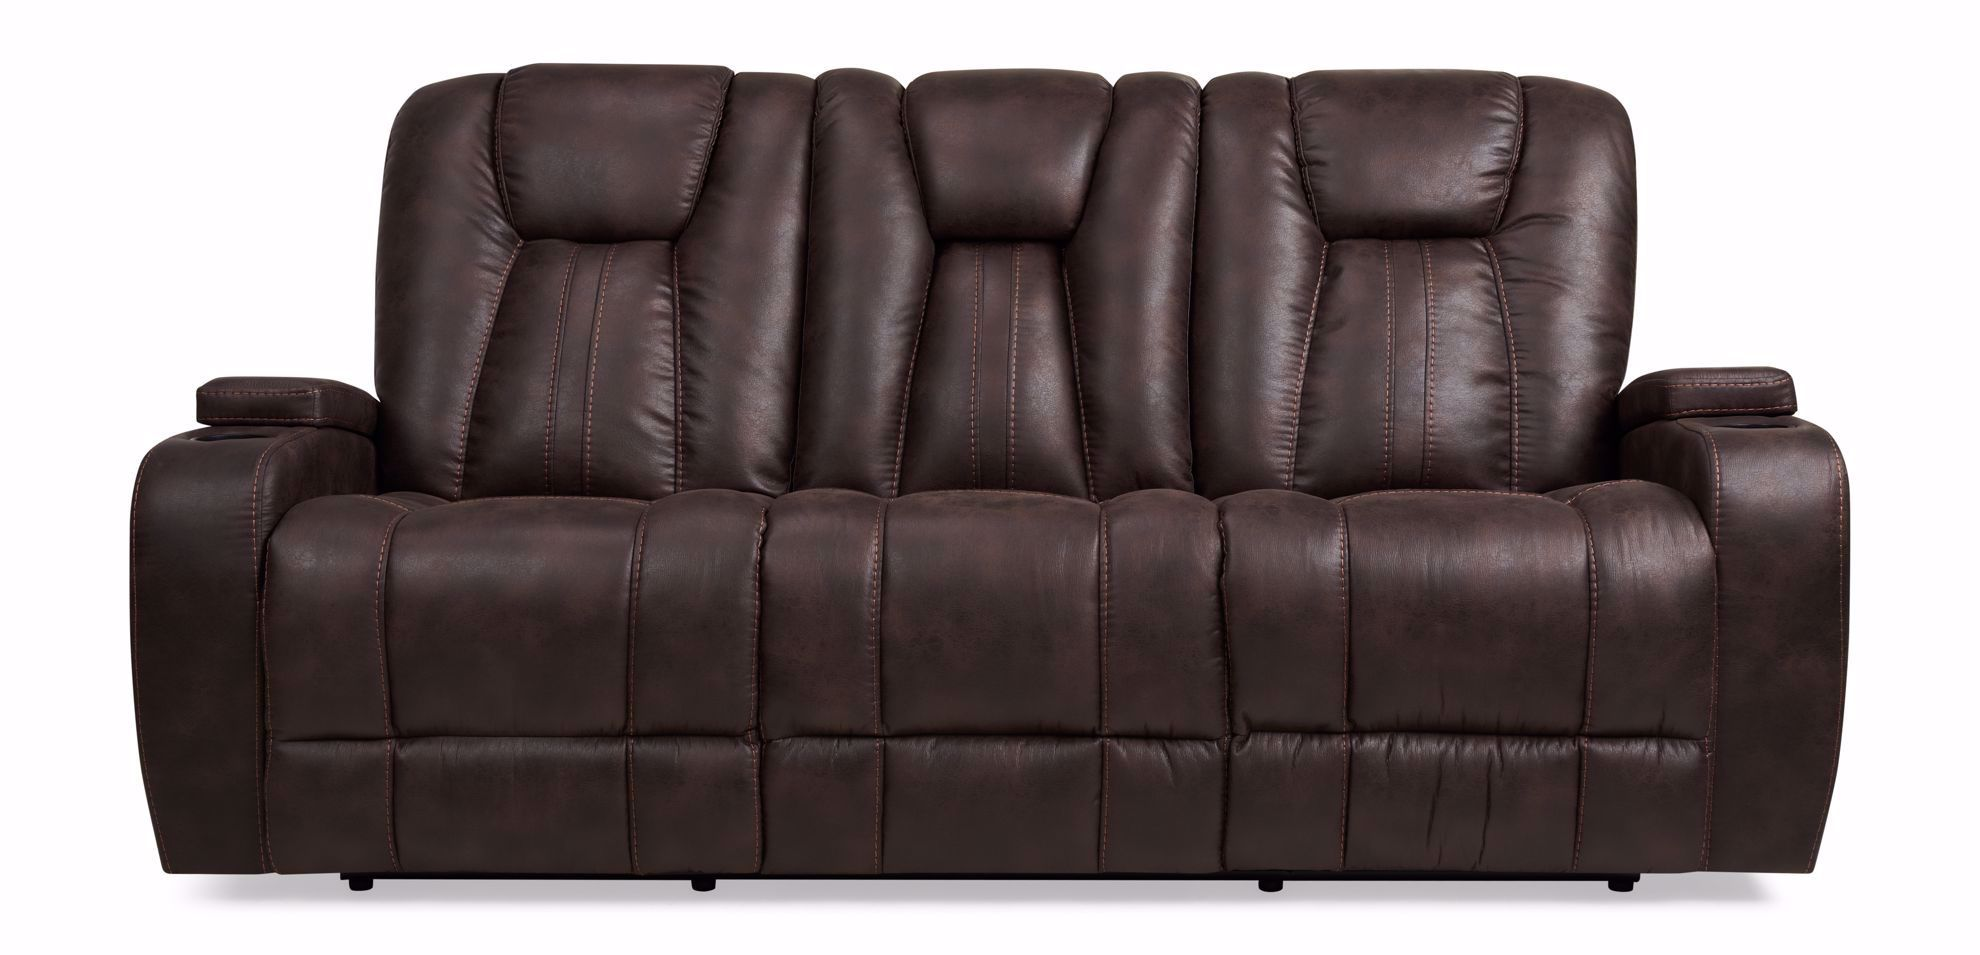 Picture of Mason Brown Reclining Sofa With Drop Down Table